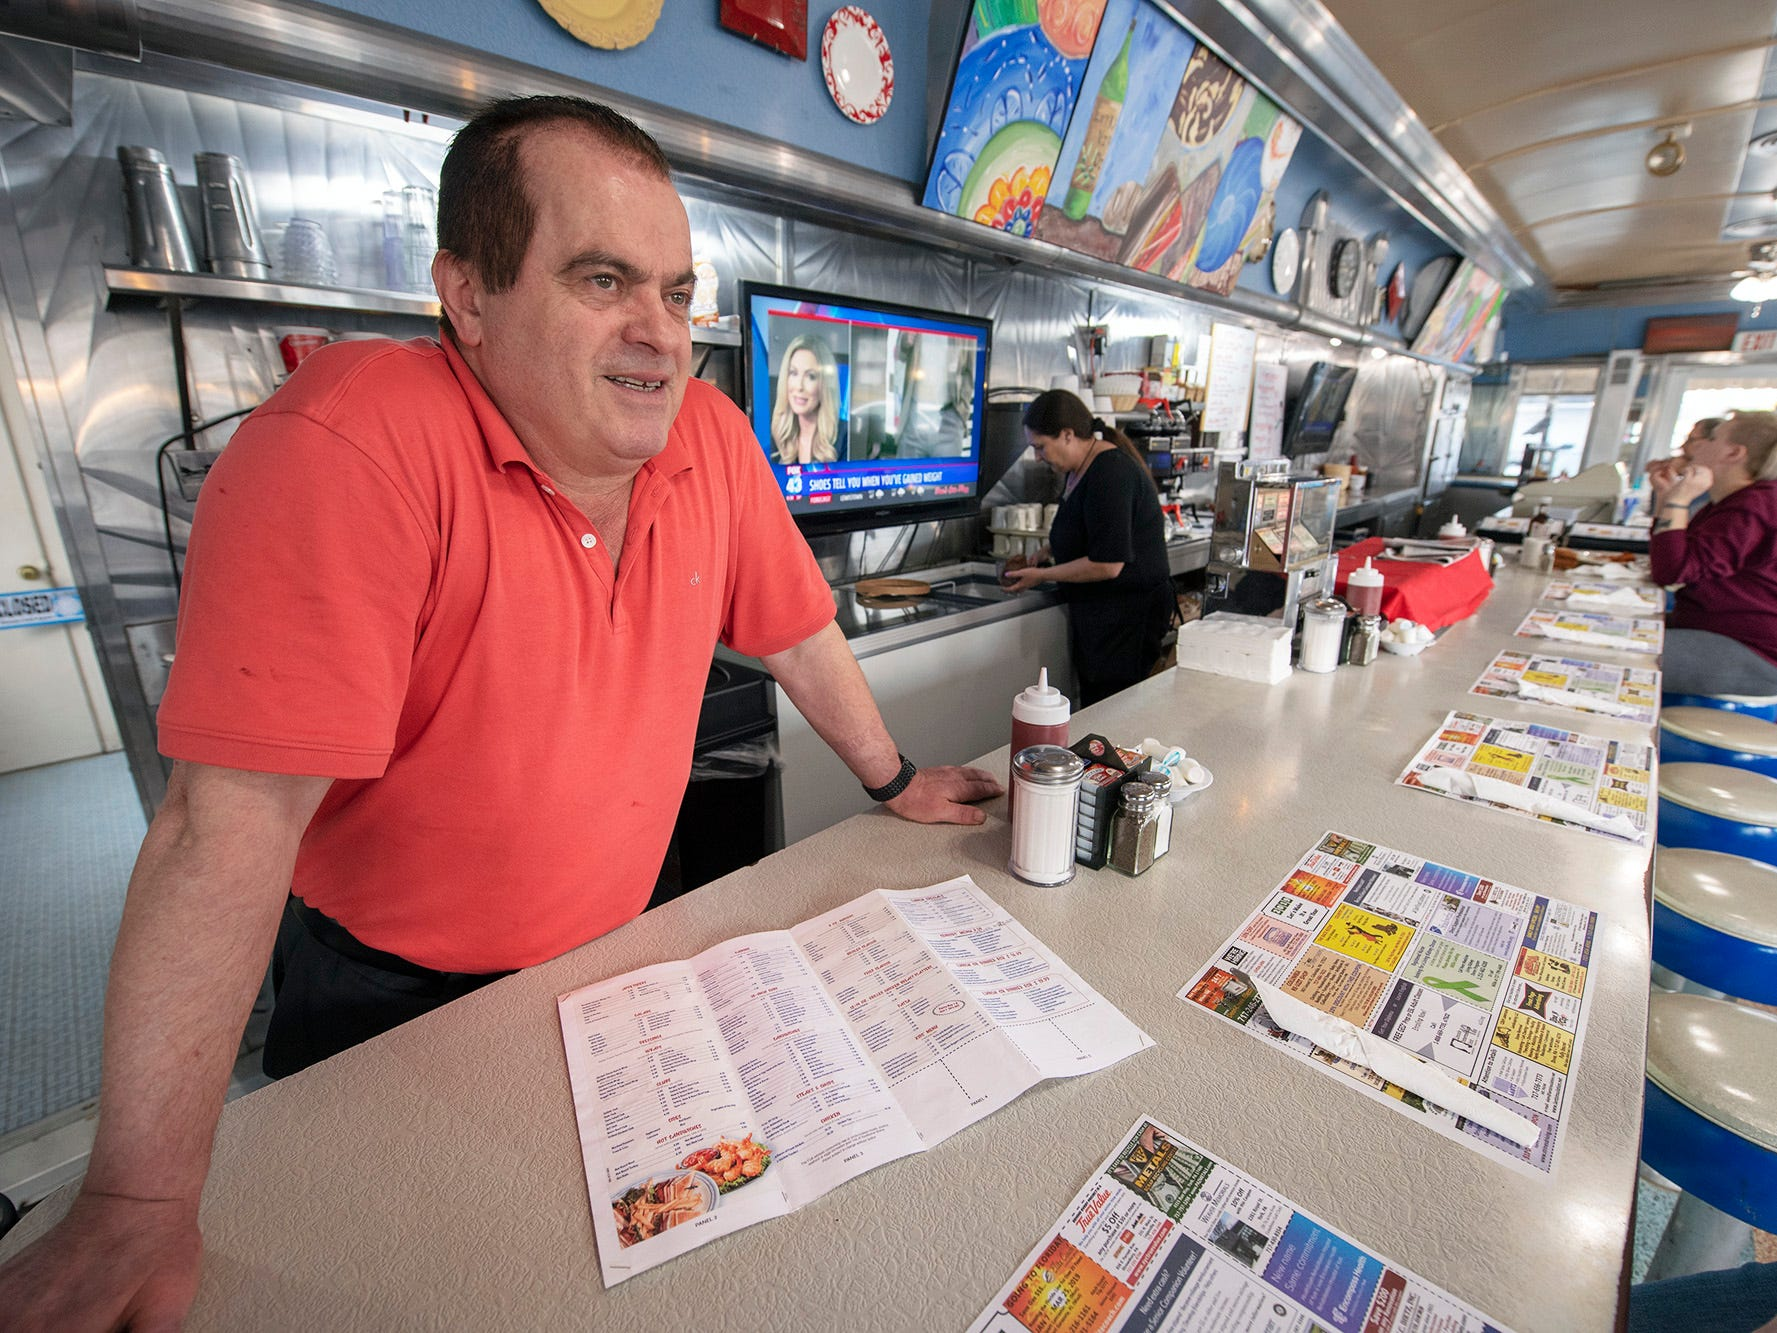 New business owner Teddy Petropoulos stands at the counter of the former Lee's Diner, now named Vicky's Diner. Changes include a new menu.